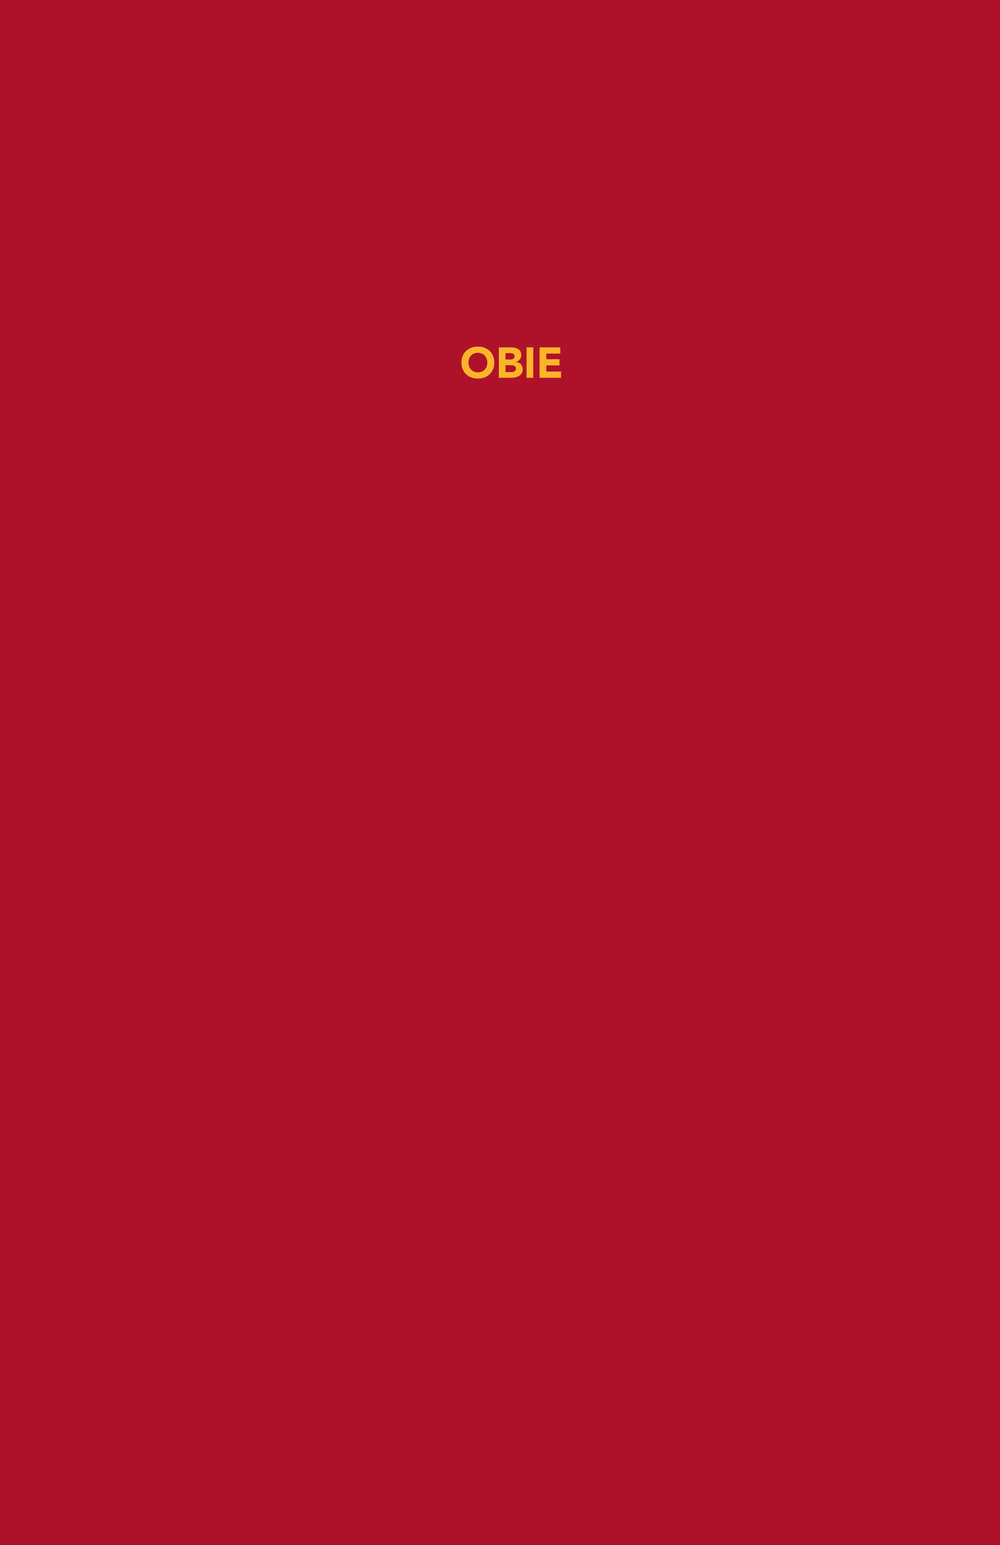 Obie-front cover.jpg